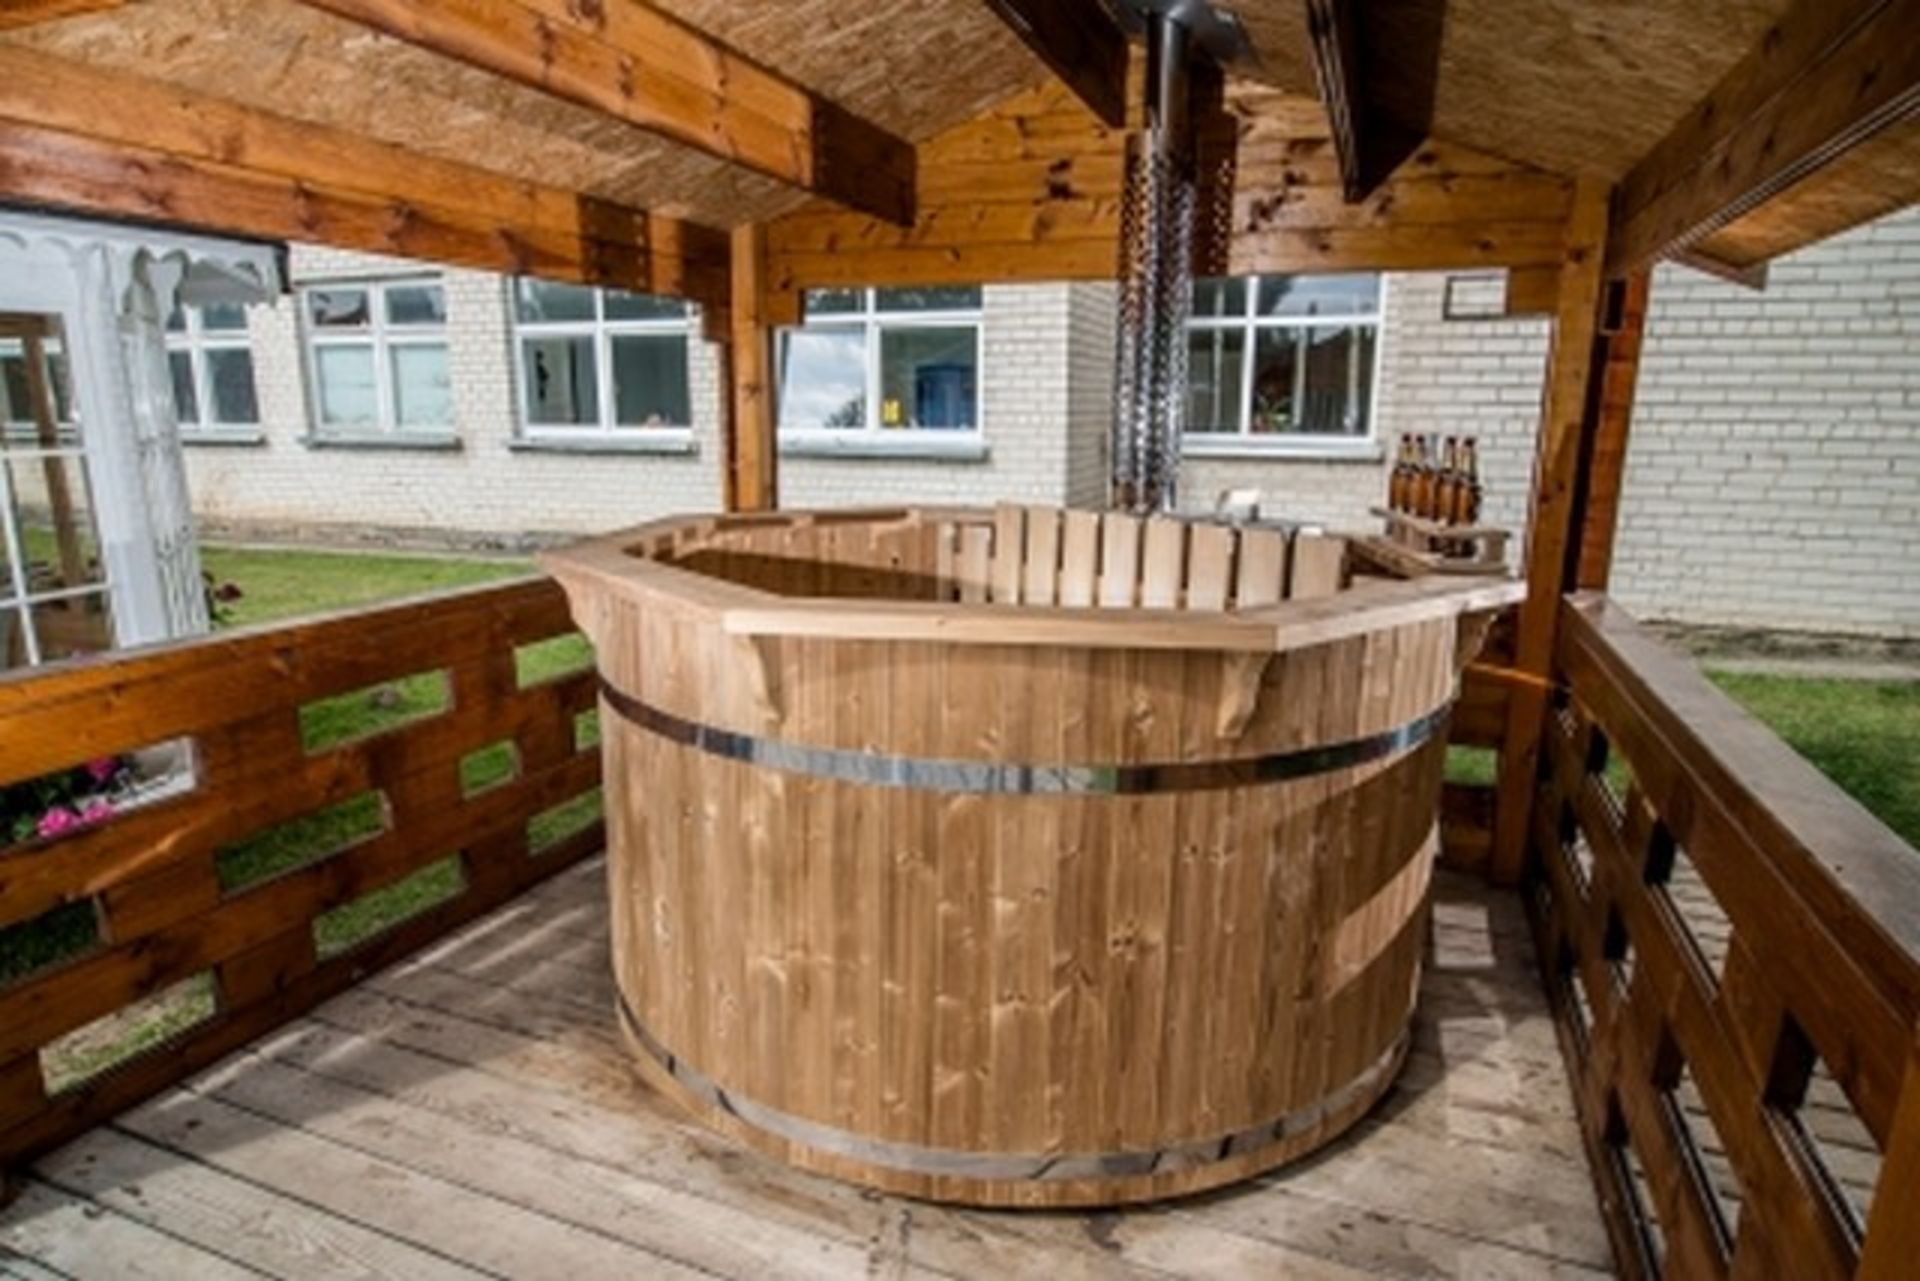 + VAT Brand New 1.9m Spruce Hot Tub with Stainless Steel Heater and Chimney - Stainless Steel - Image 2 of 4